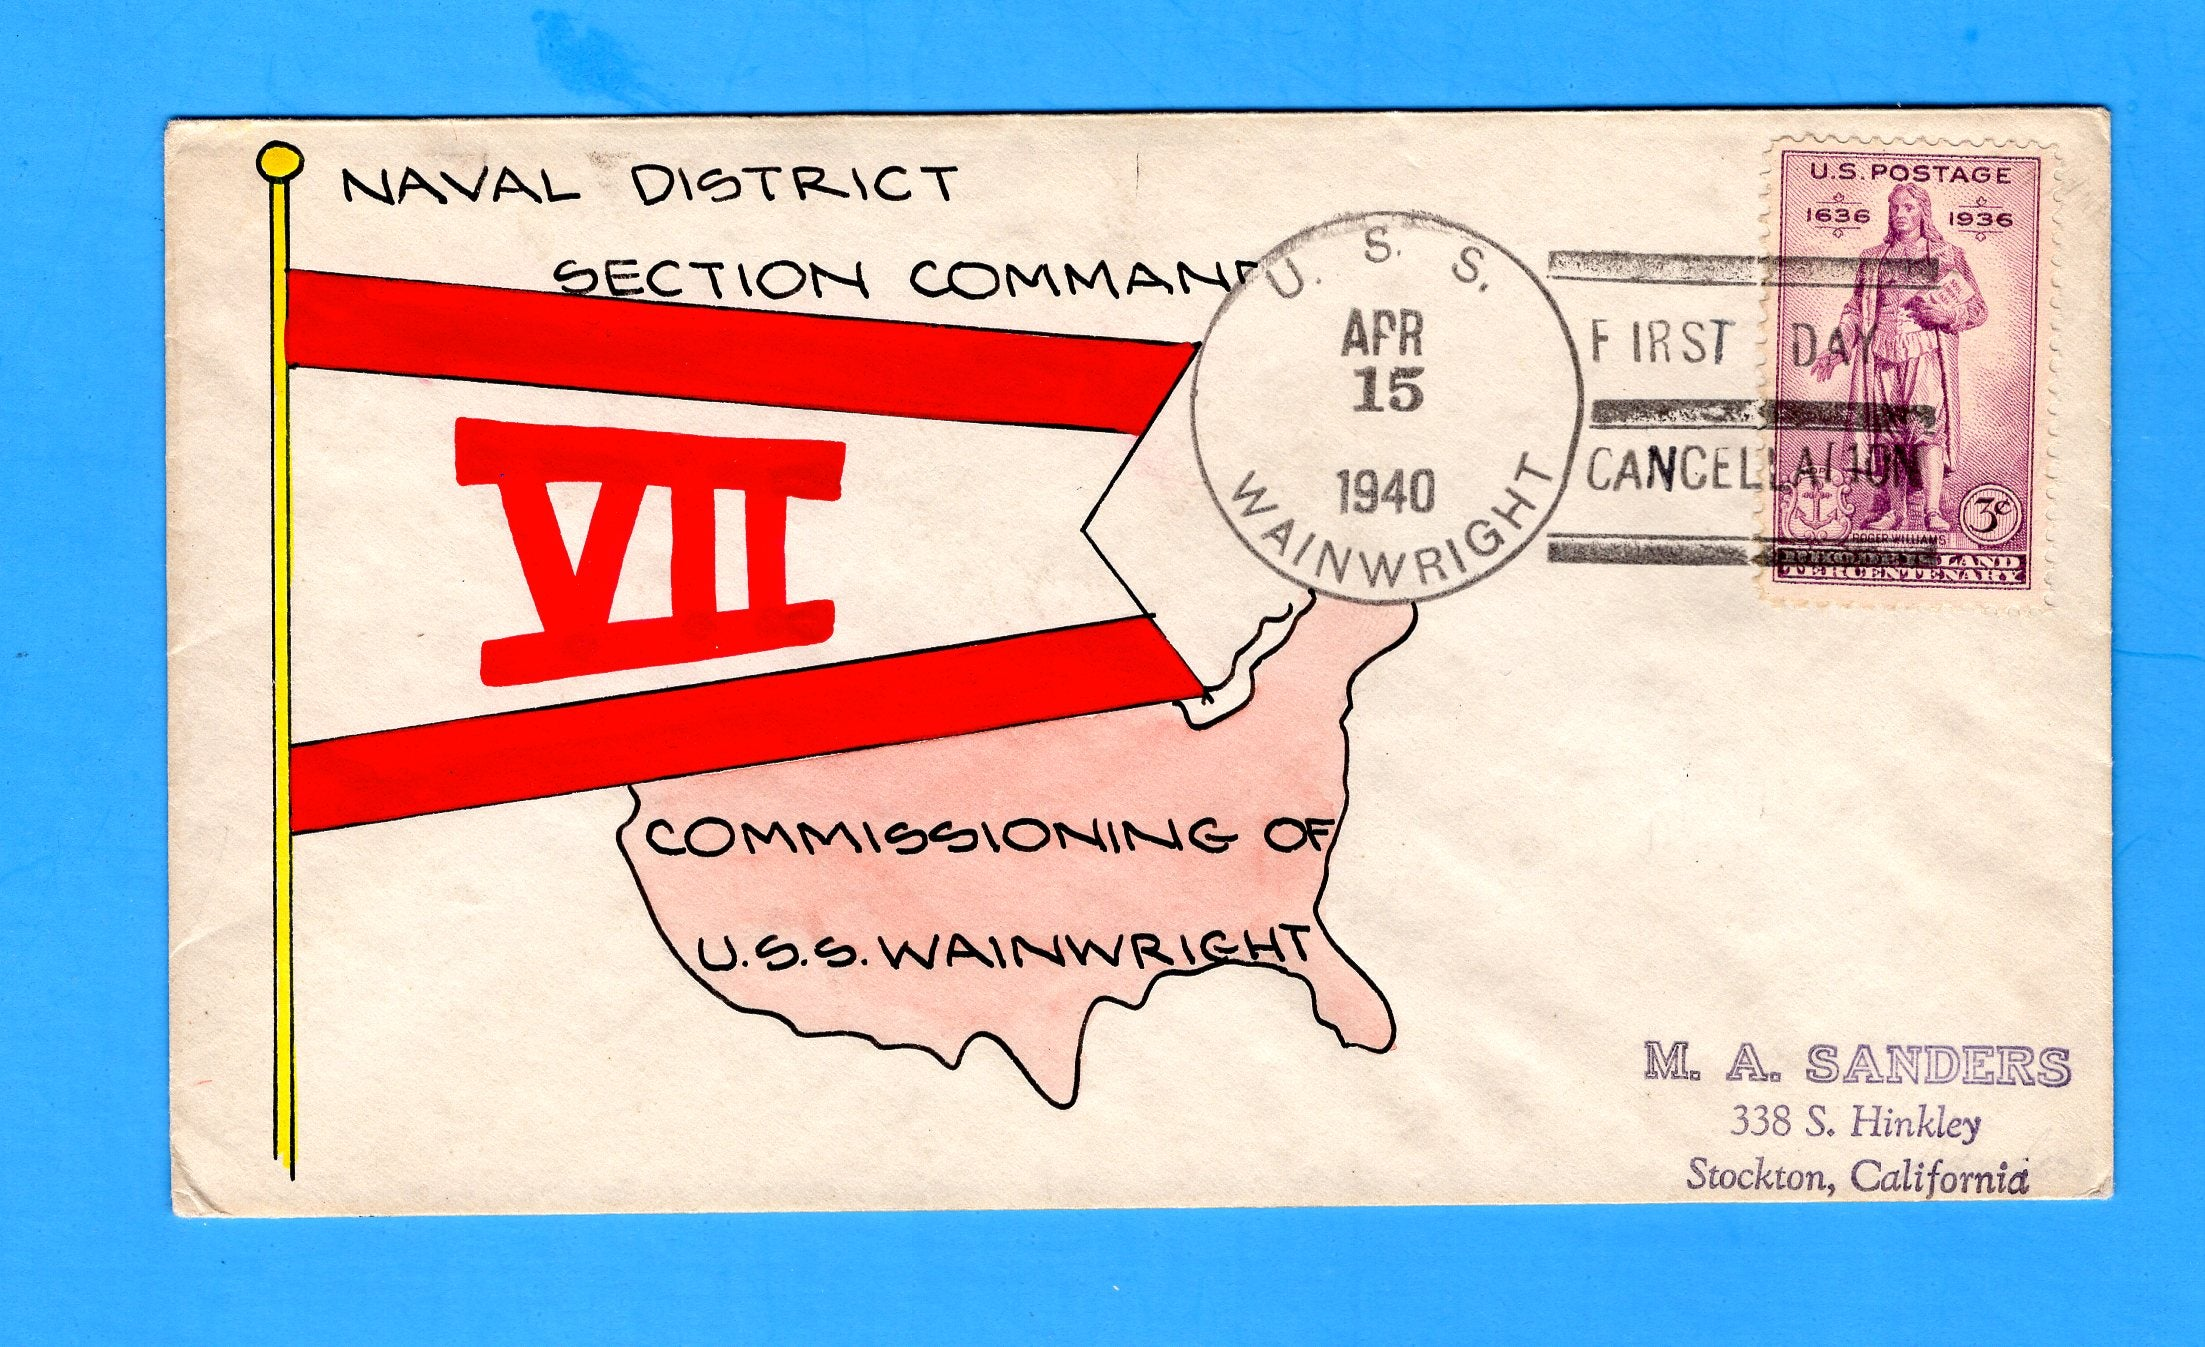 USS Wainwright DD-419 Commissioned April 15, 1940 - Mae Weigand Hand Painted Cachet